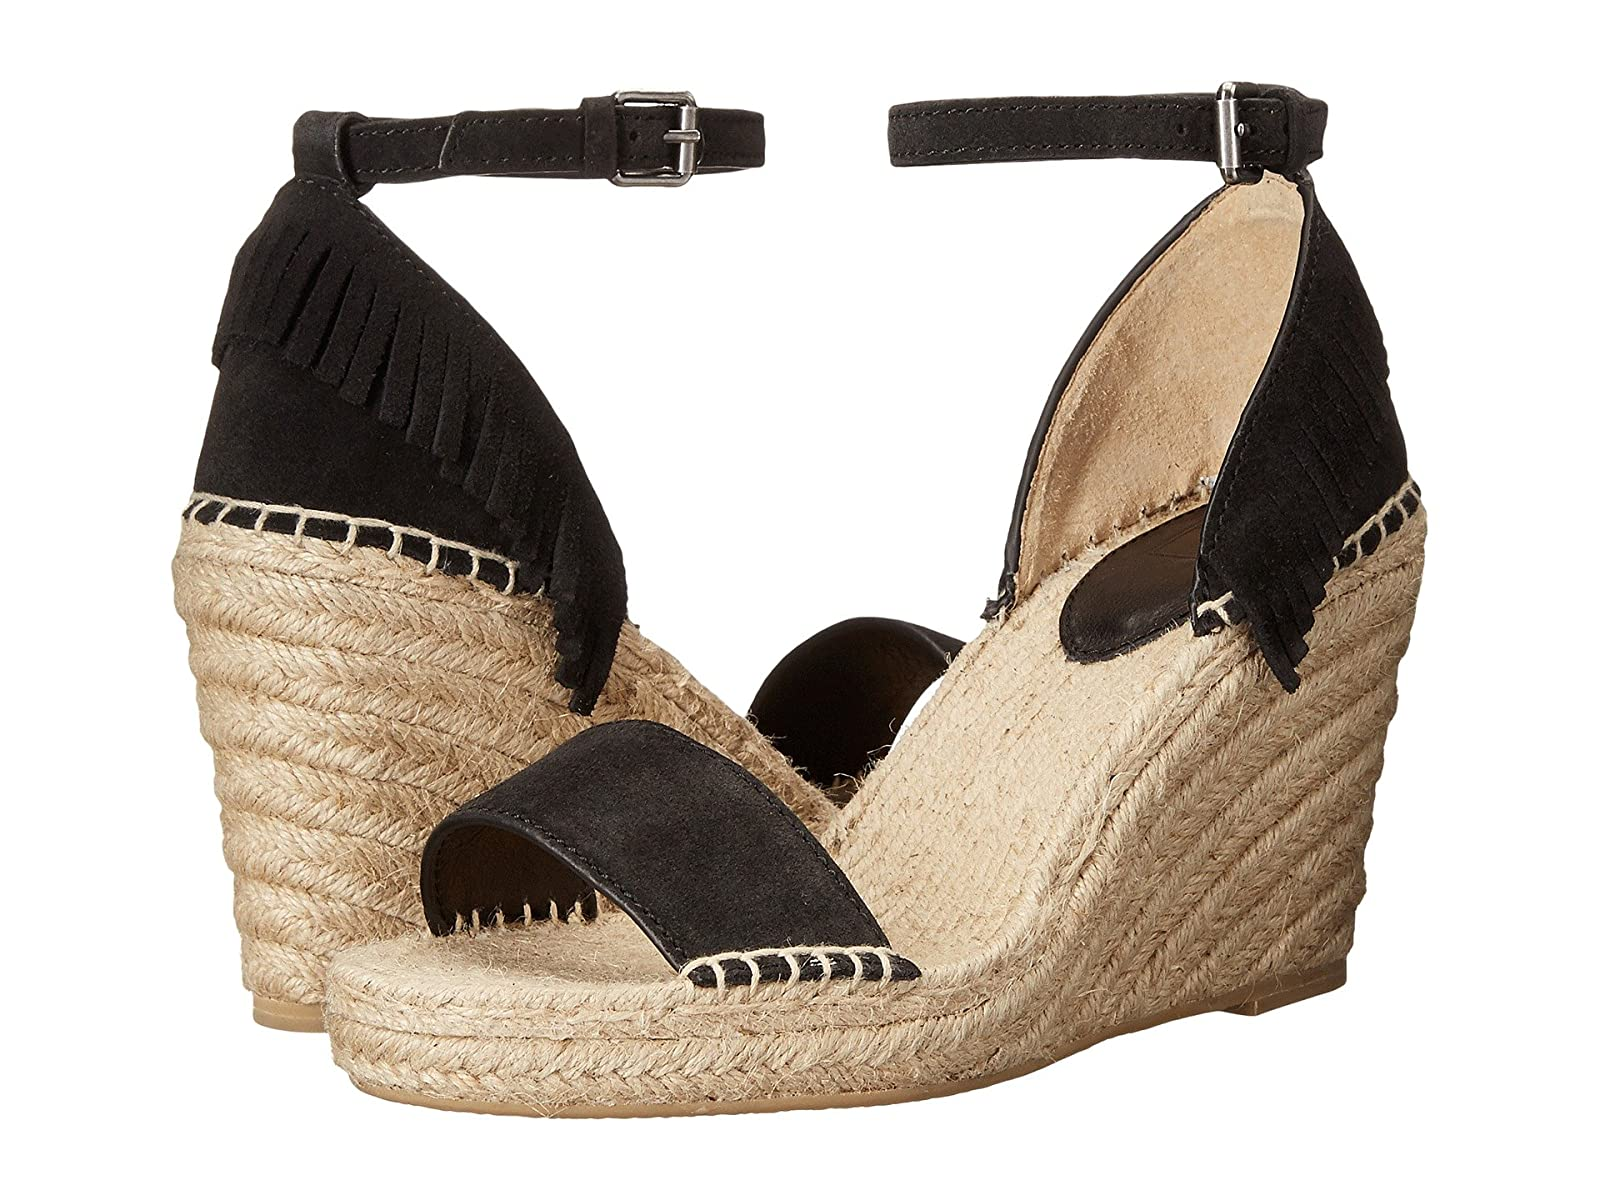 Frye Lila Feather WedgeCheap and distinctive eye-catching shoes